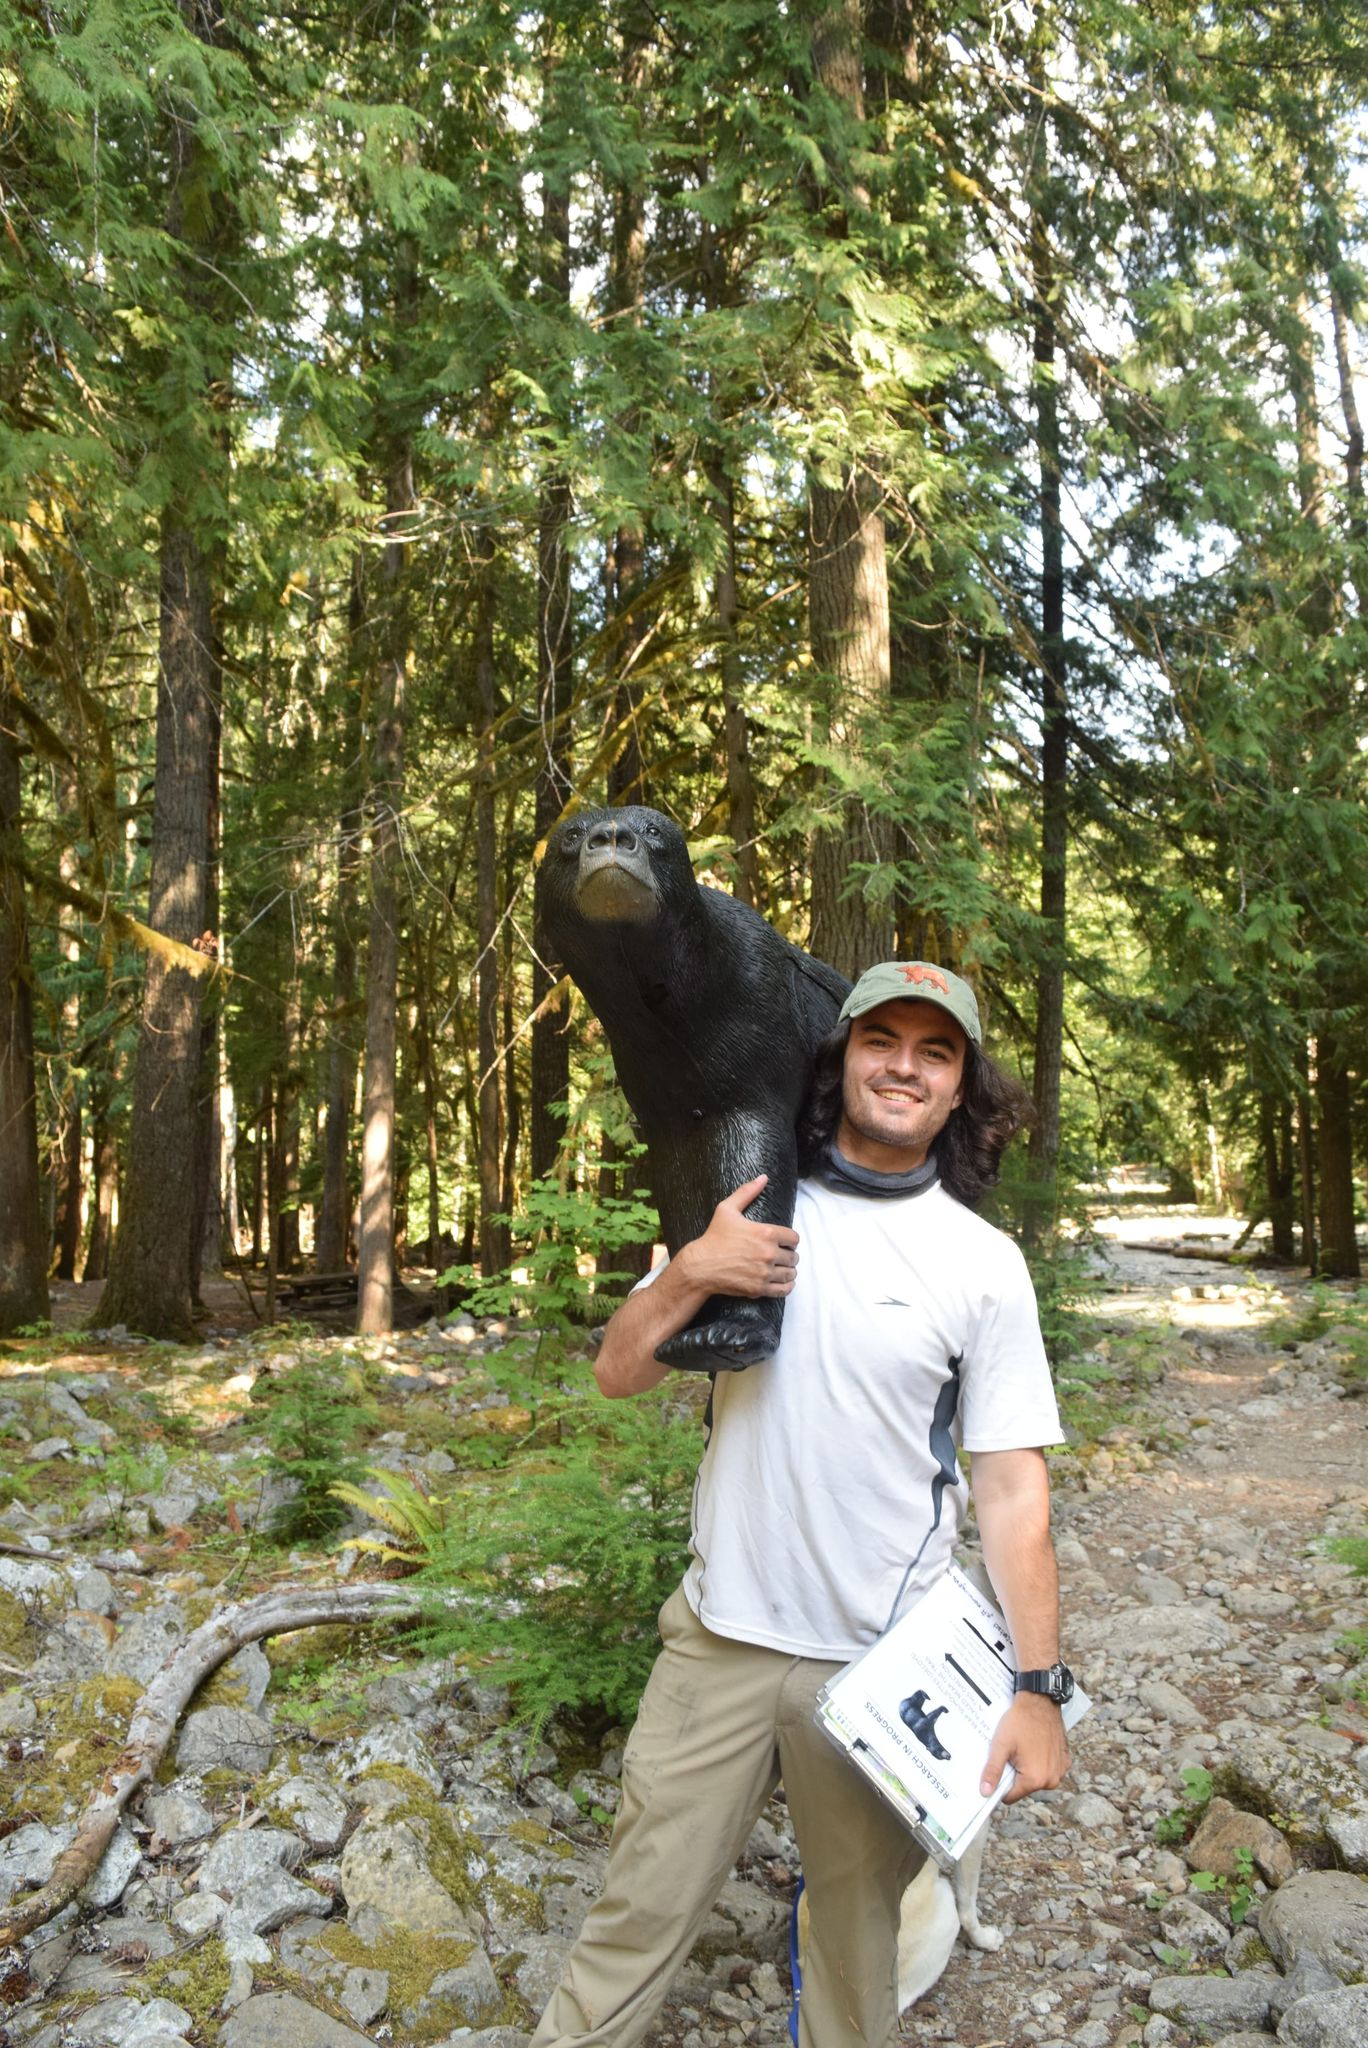 Cullen Anderson with Bear Decoy at North Cascades National Park